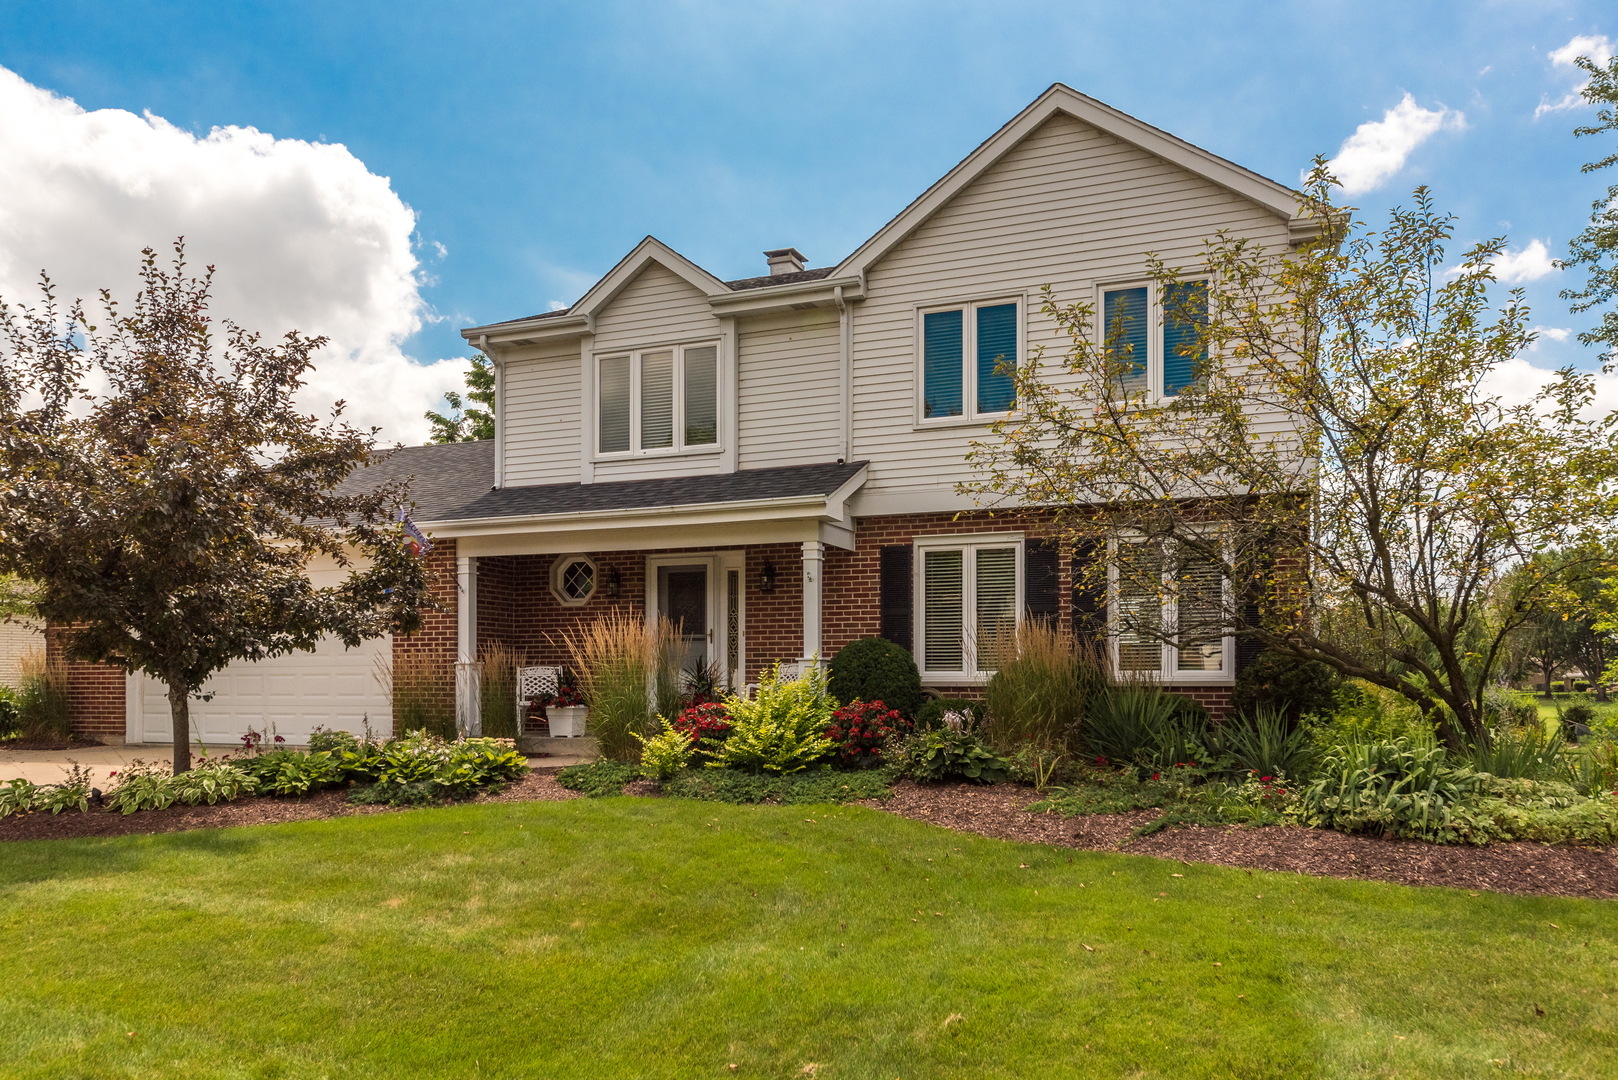 Photo for 10S316 Havens Drive, DOWNERS GROVE, IL 60516 (MLS # 10478281)